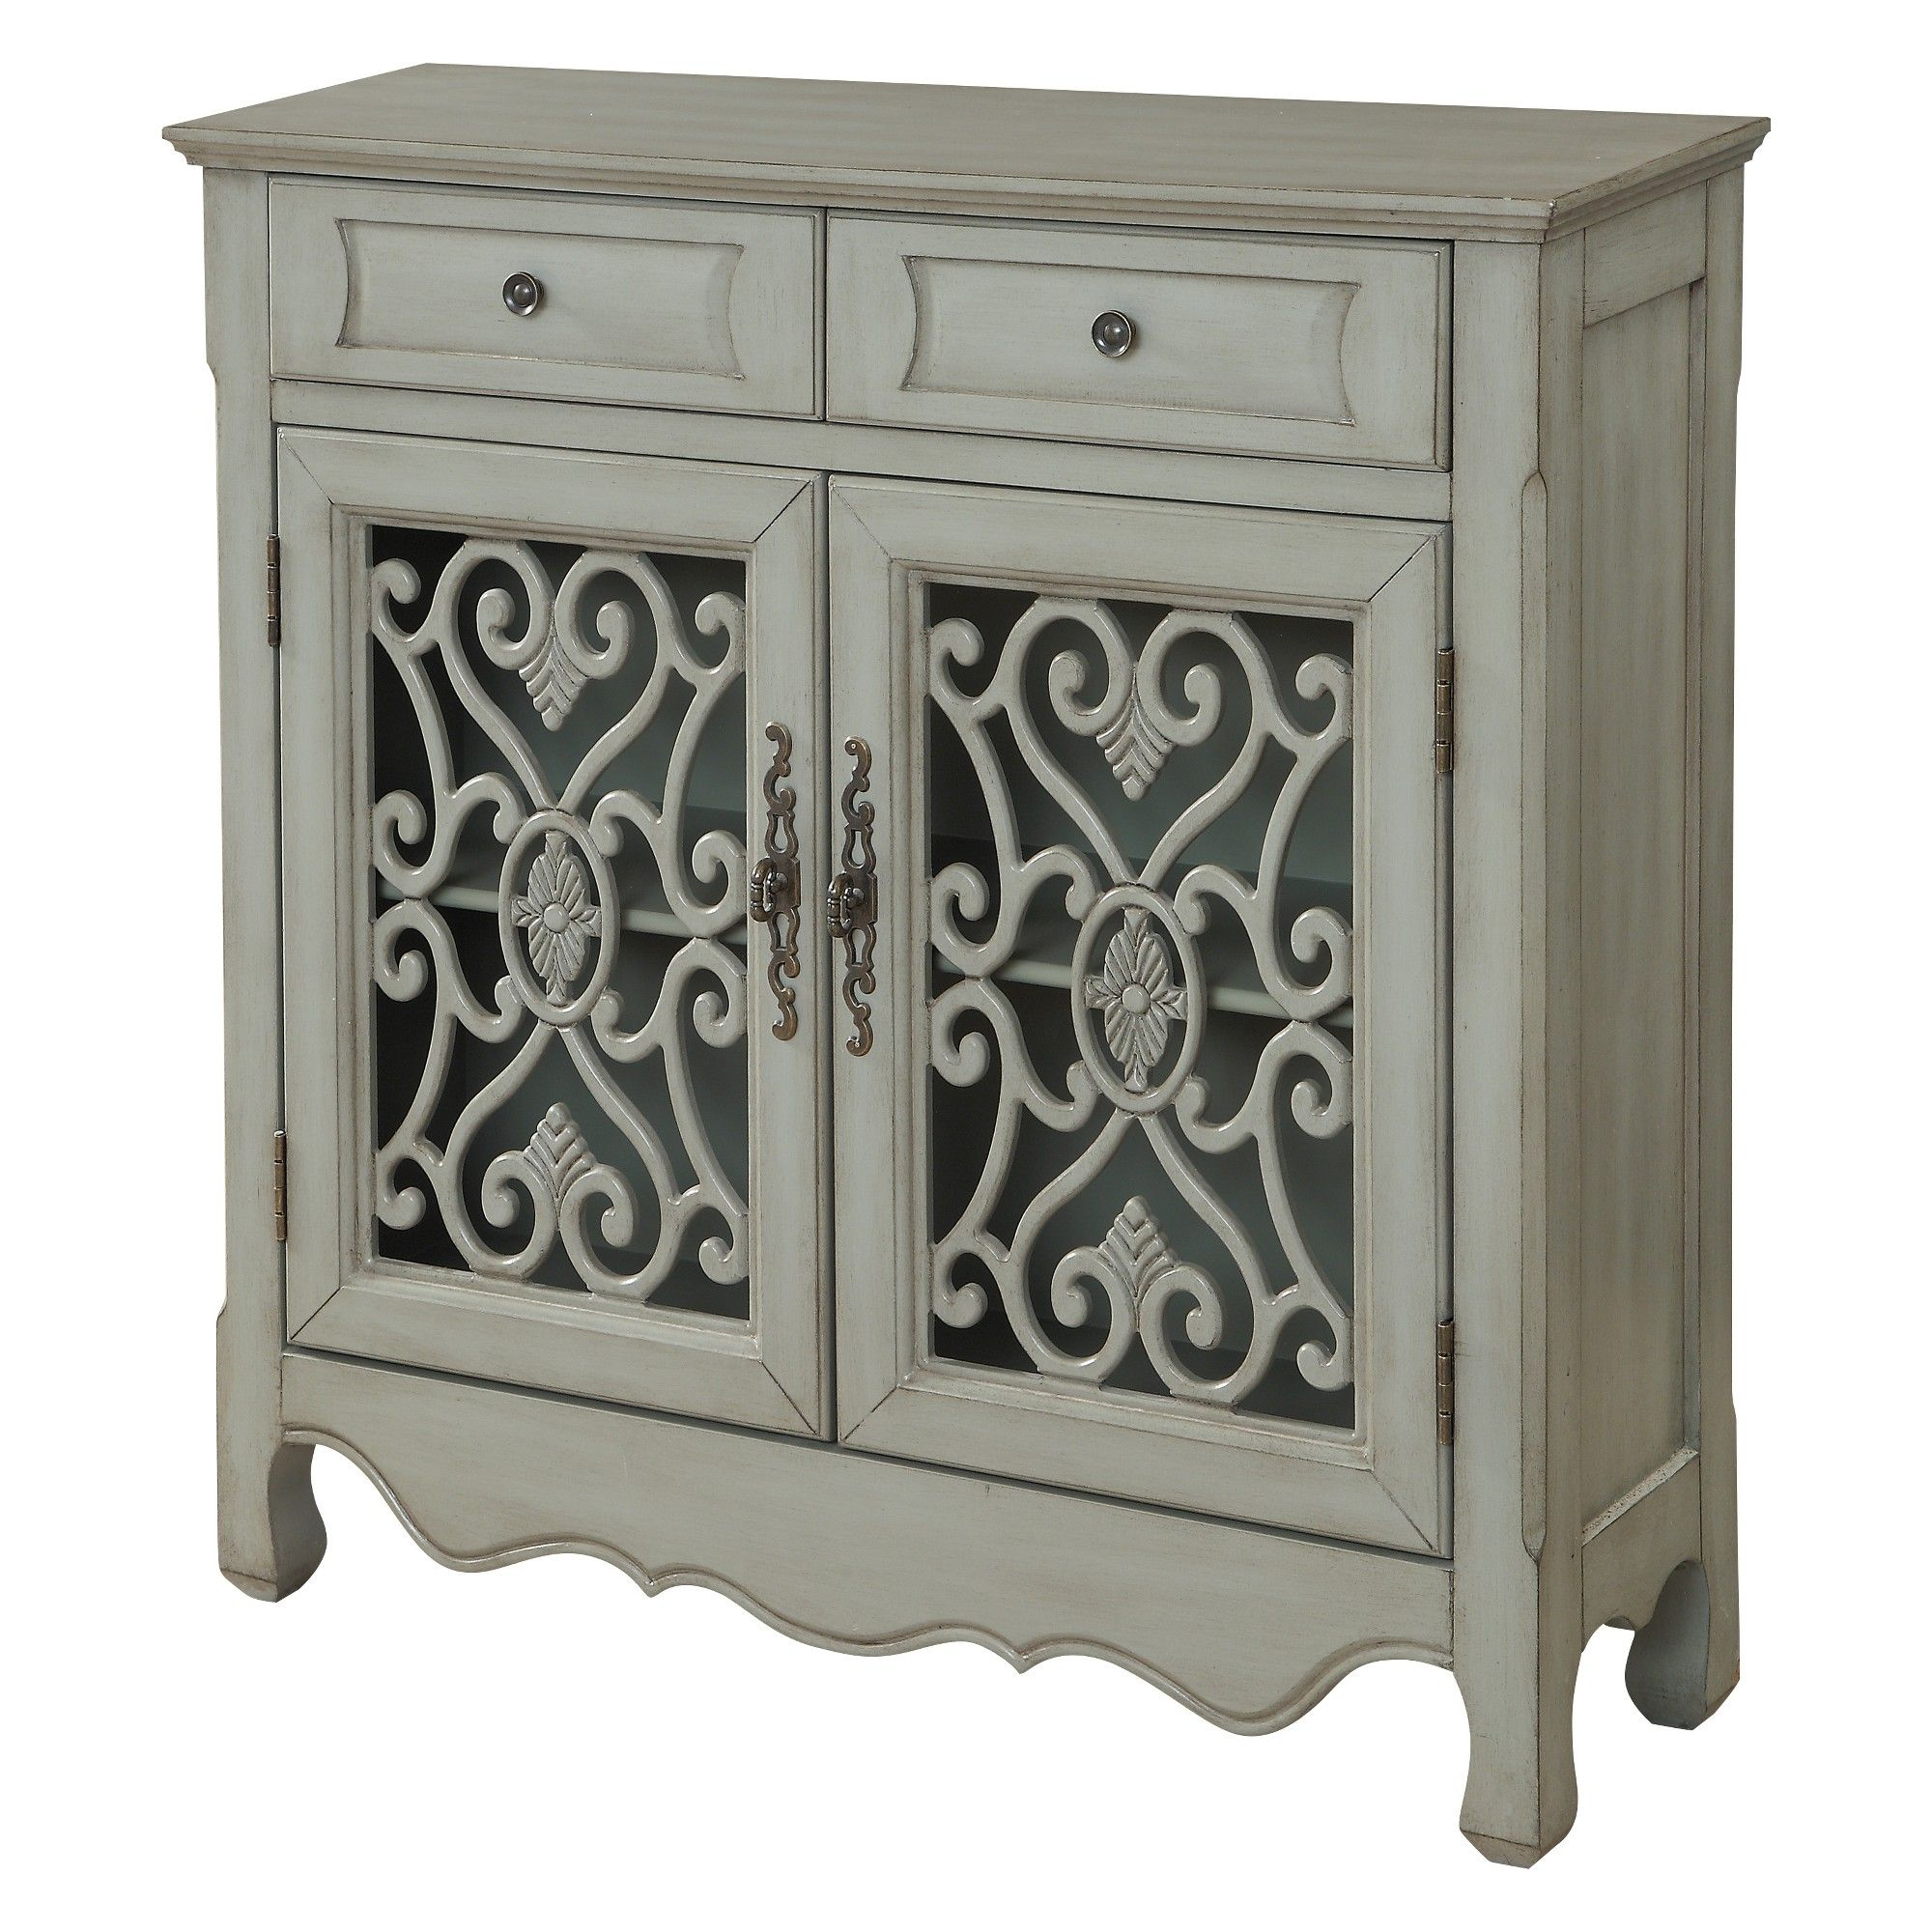 Christopher Knight Home Harvester Storage Cabinet Green